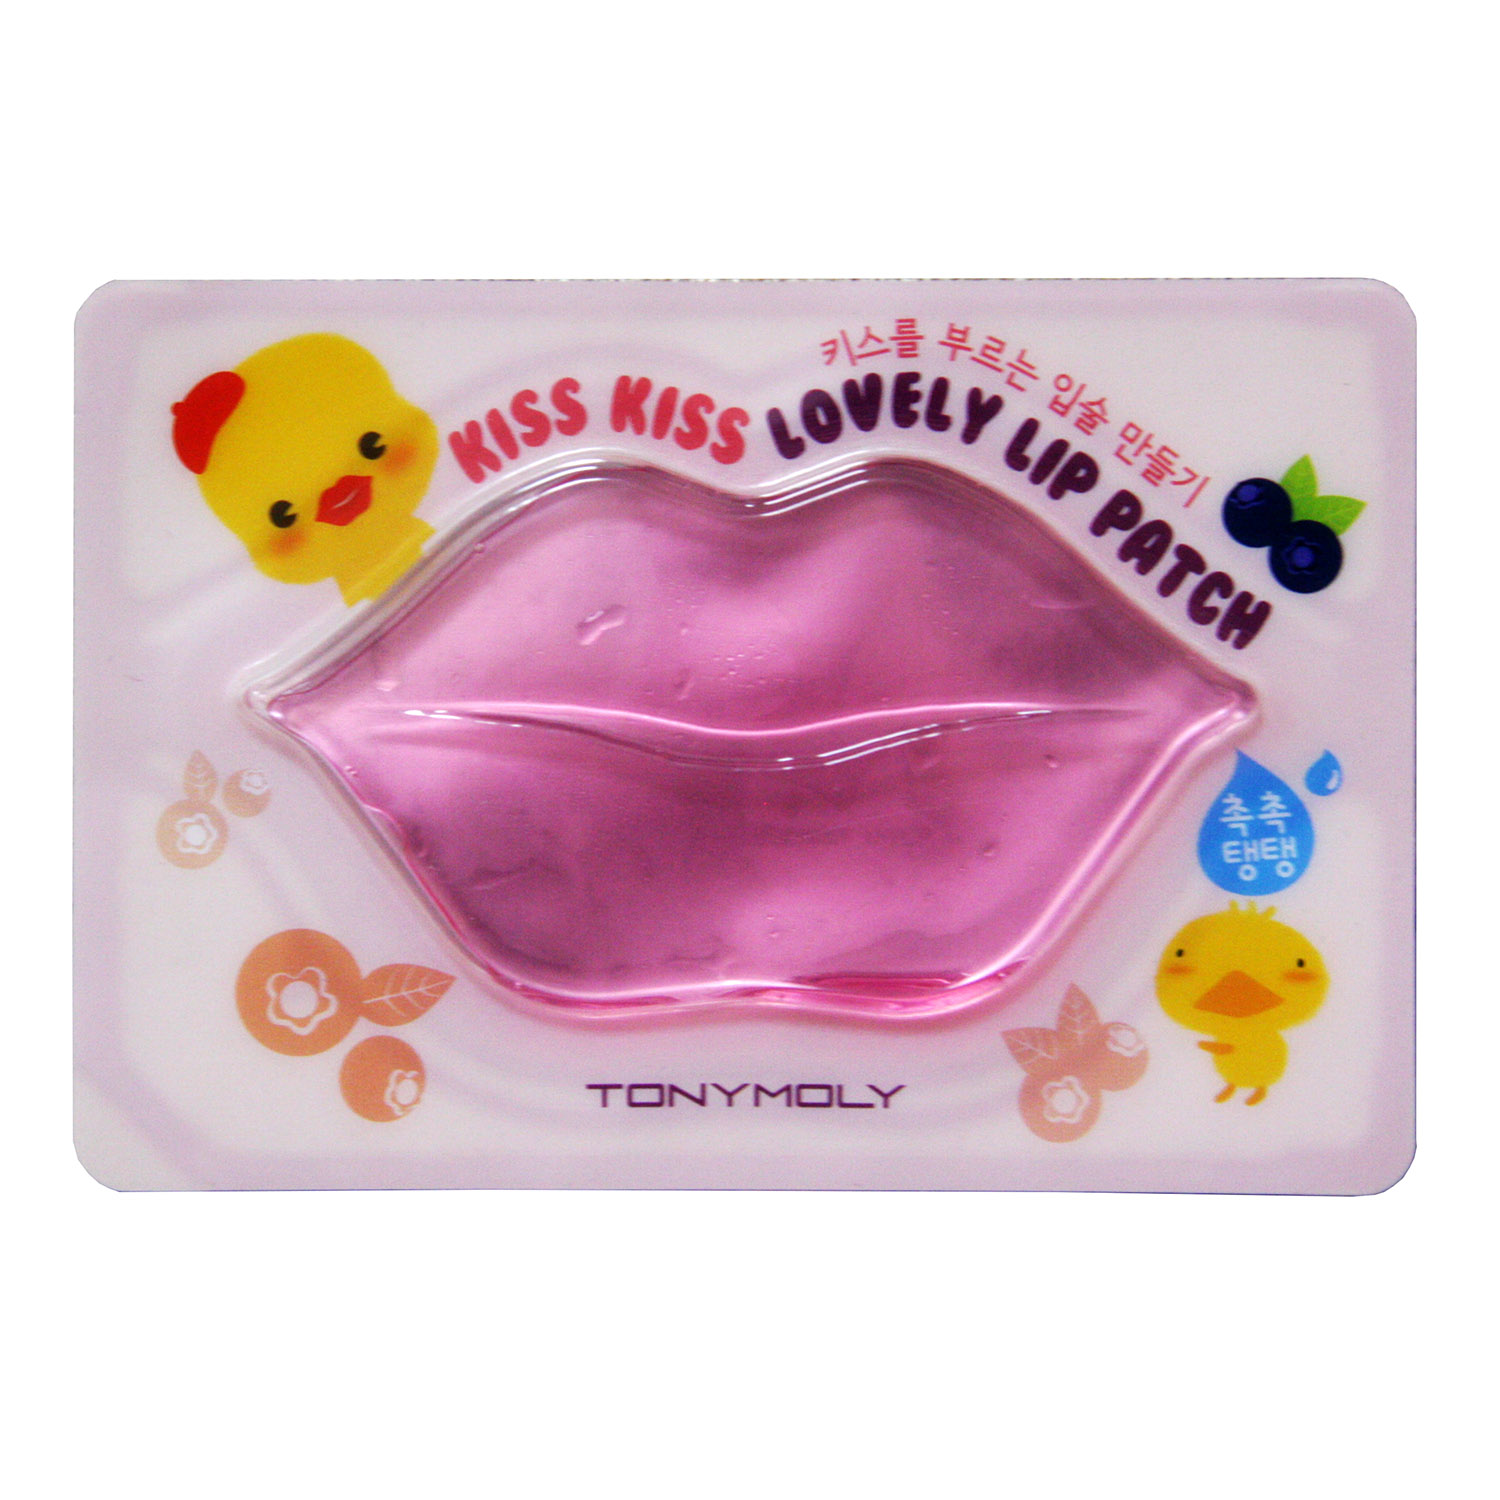 TONY MOLY Маска гидрогелева для губ 10гр Kiss Kiss Lovely Lip Patch